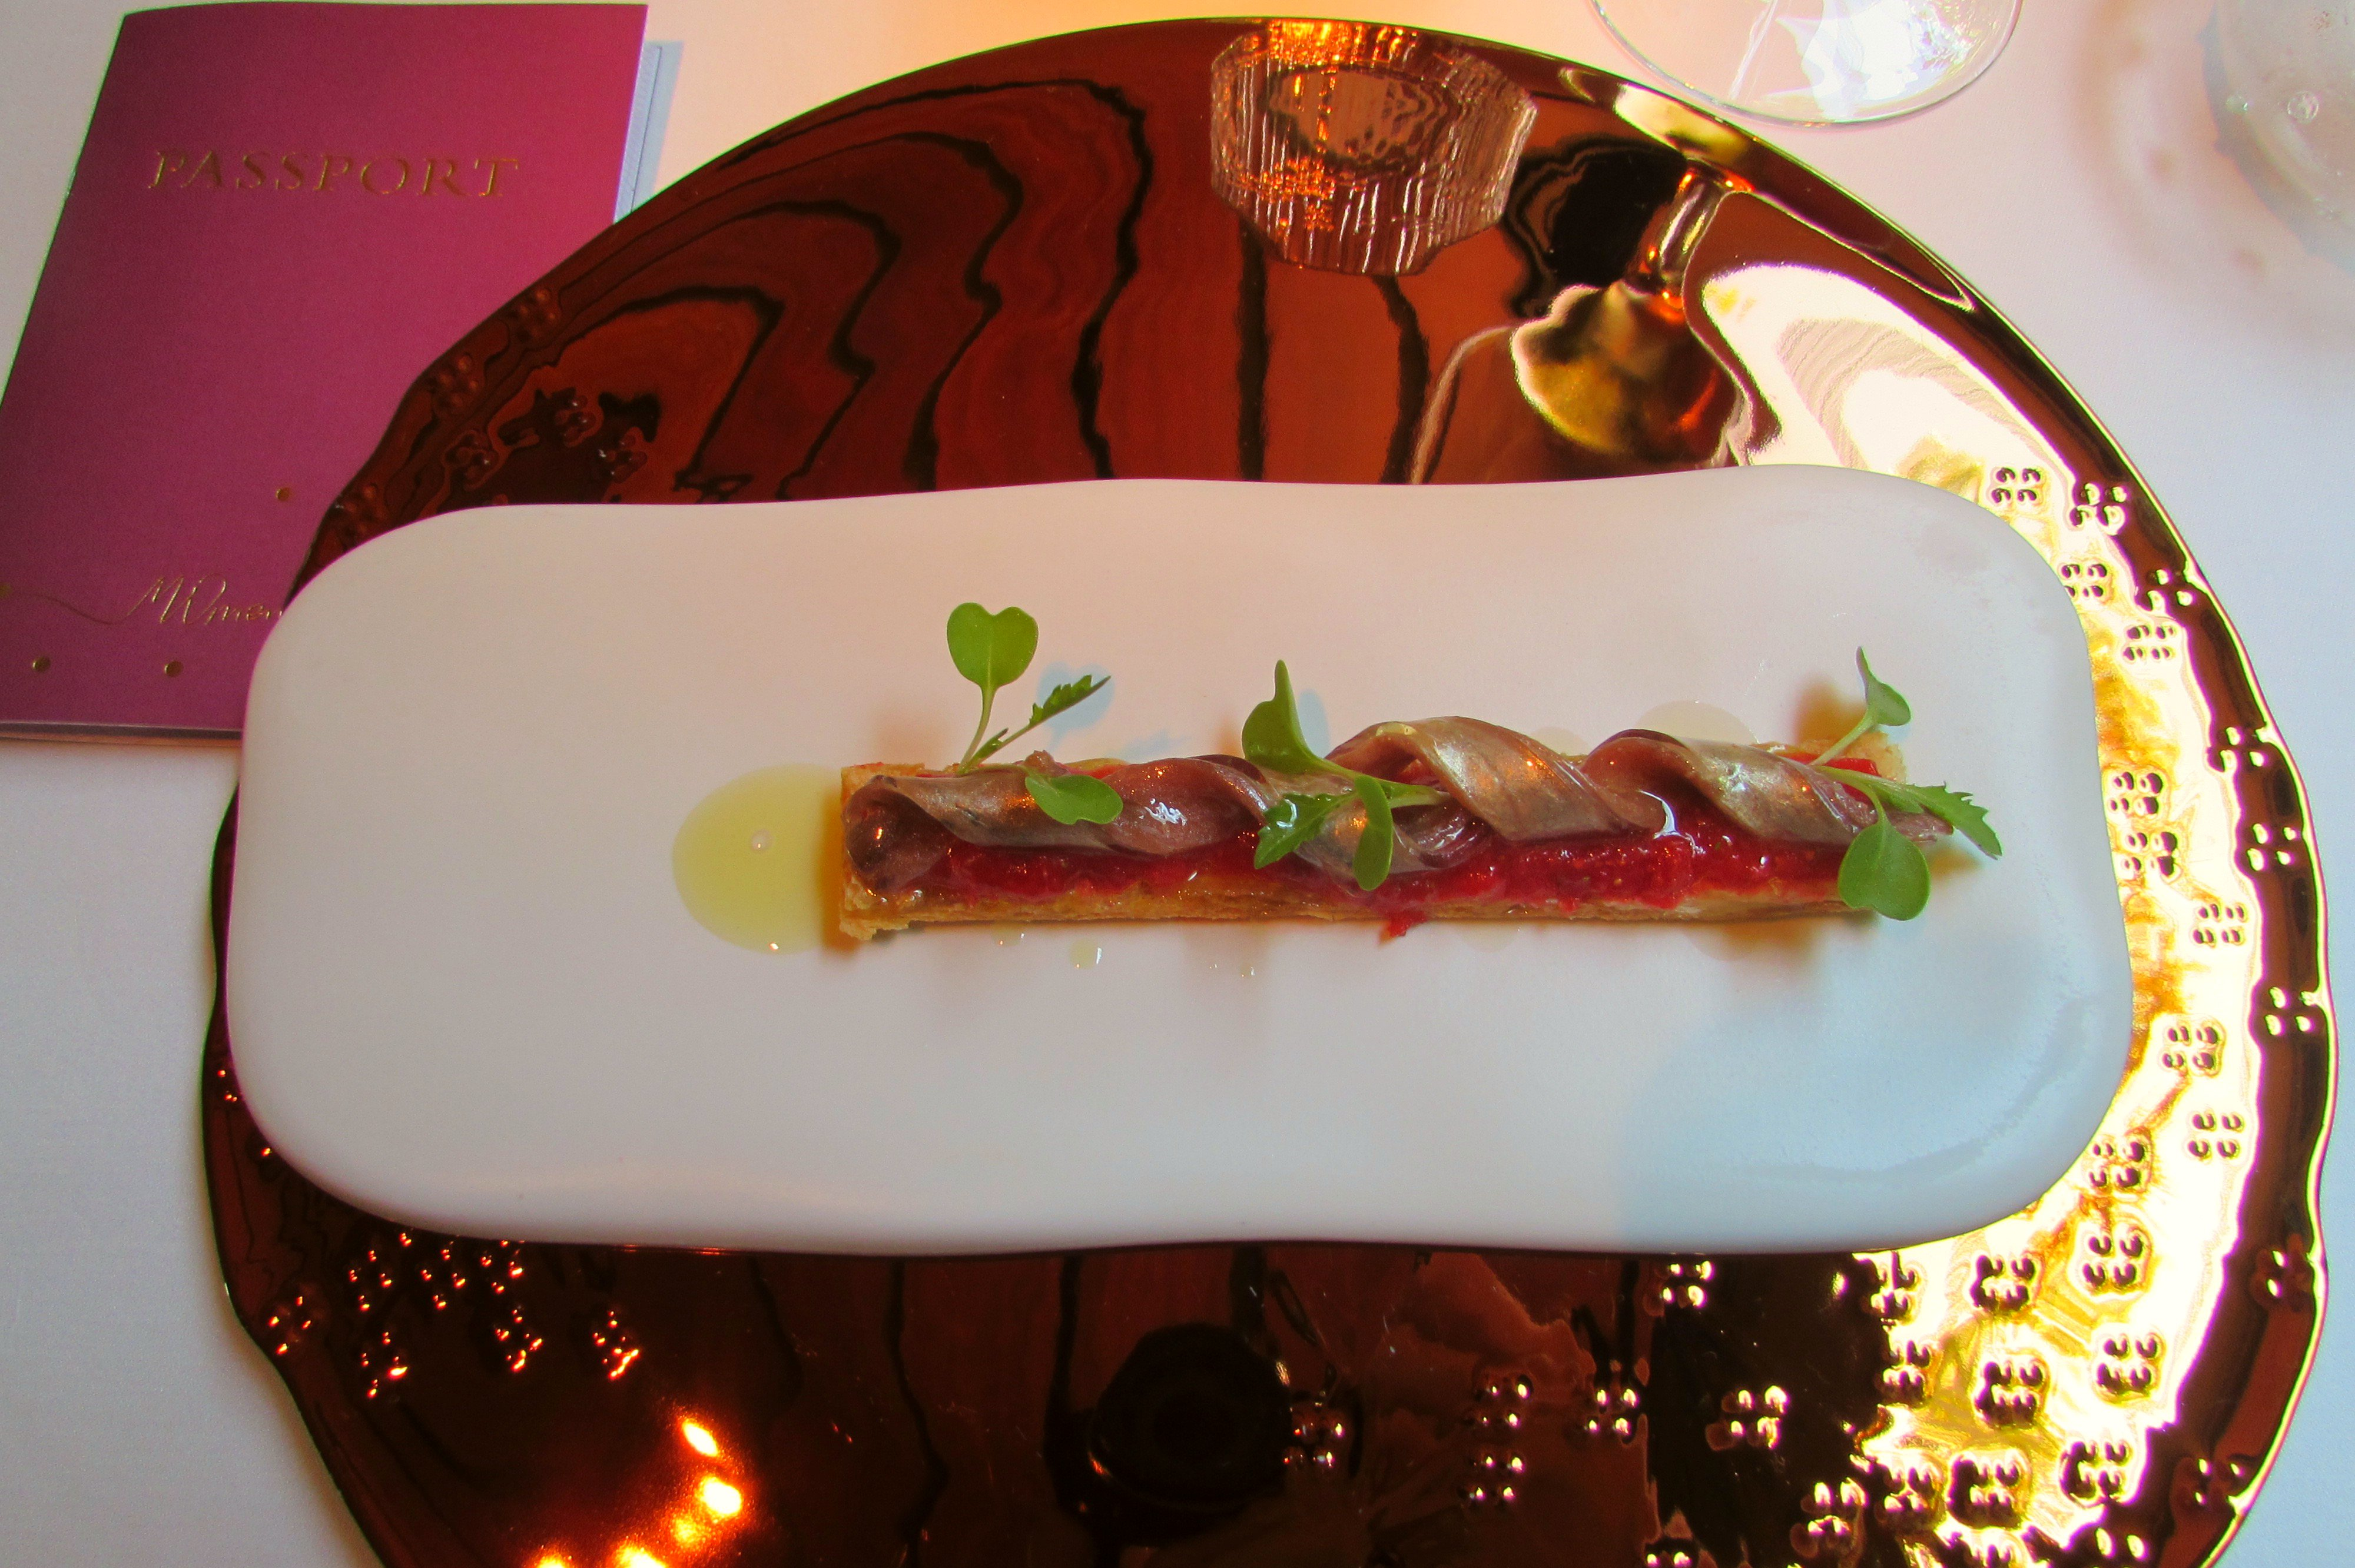 Moments 2-Michelin Starred Restaurant Barcelona - Starter Dish